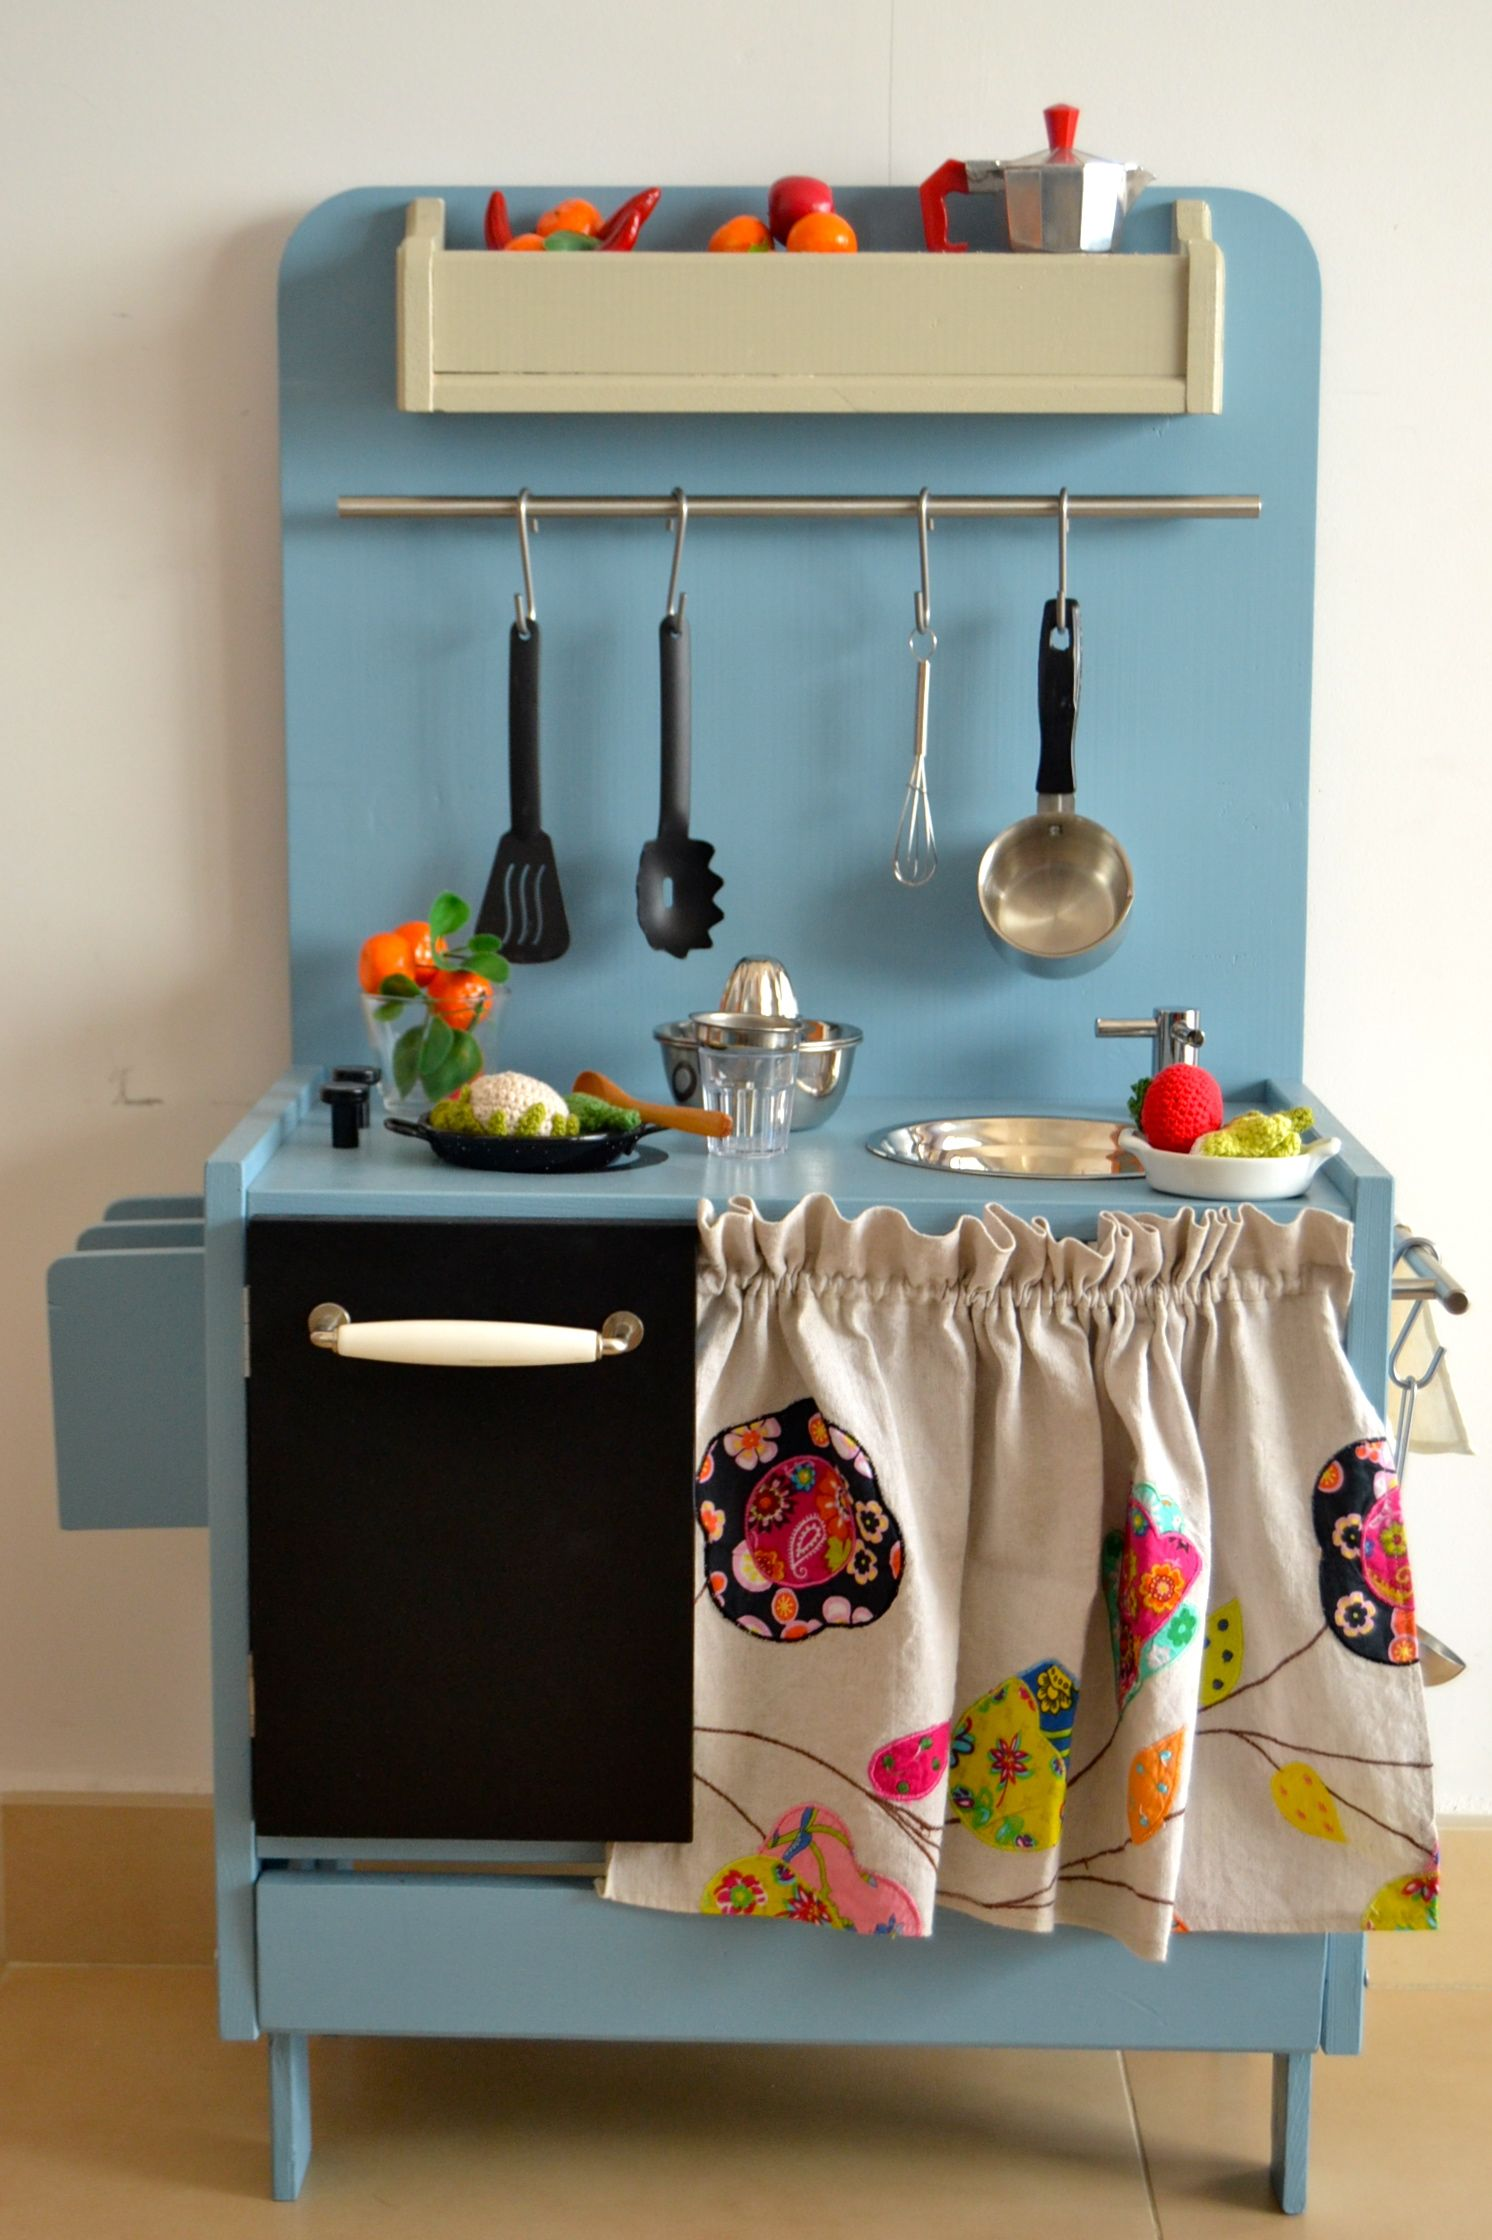 Wooden play kitchen | Emily\'s Play Kitchen | Pinterest | Wooden play ...